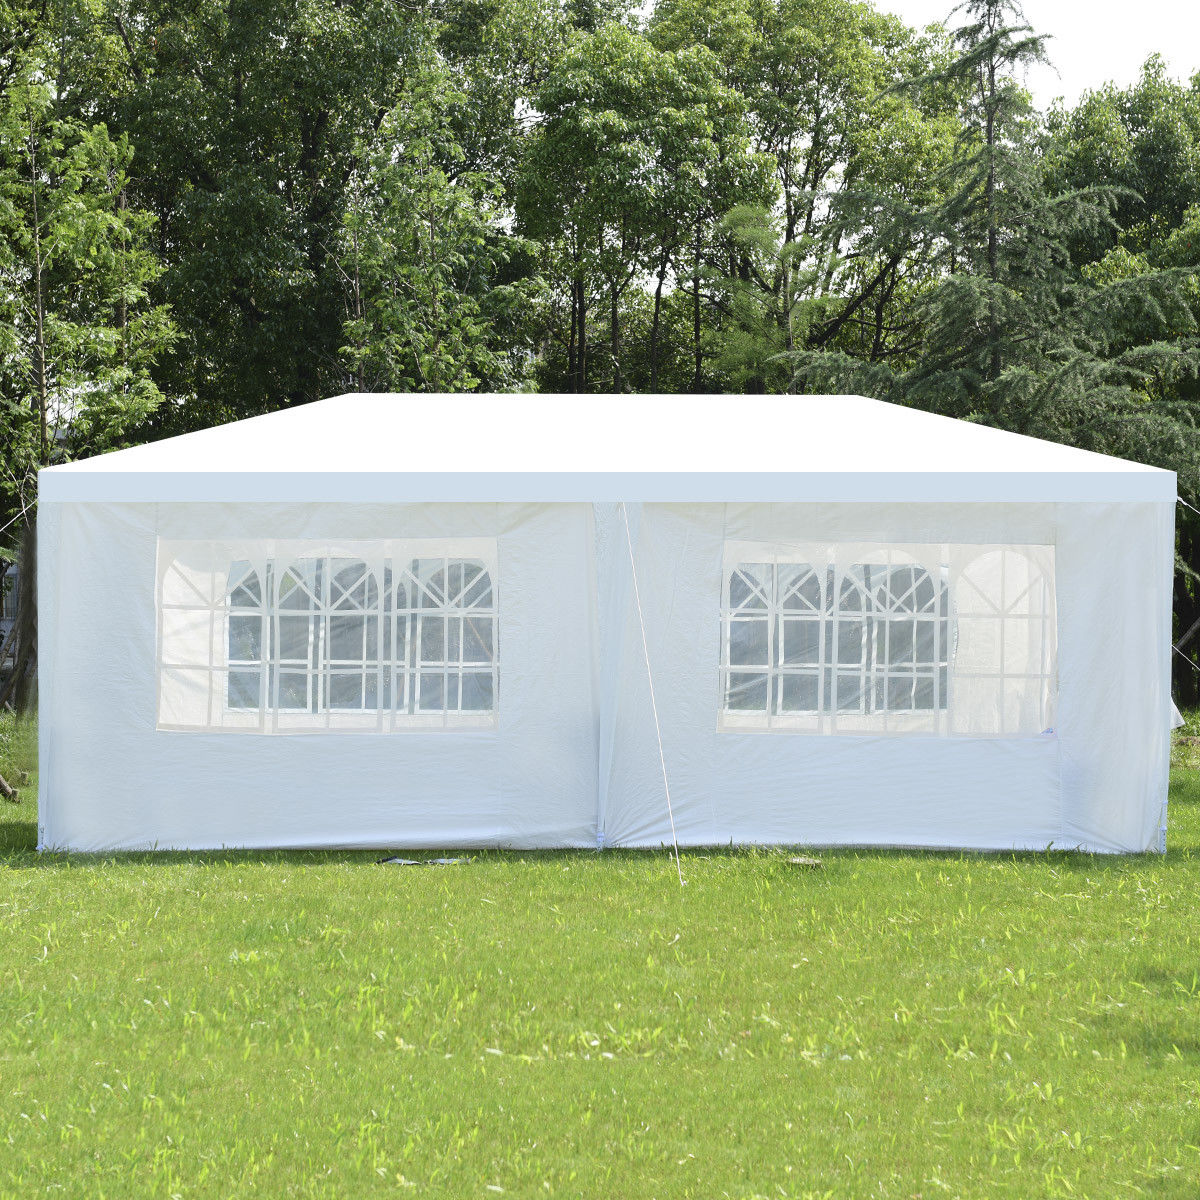 Wedding Tent Canopy Party 10'x20' Heavy Duty Gazebo Cater Event W/ Side Walls - image 2 of 10